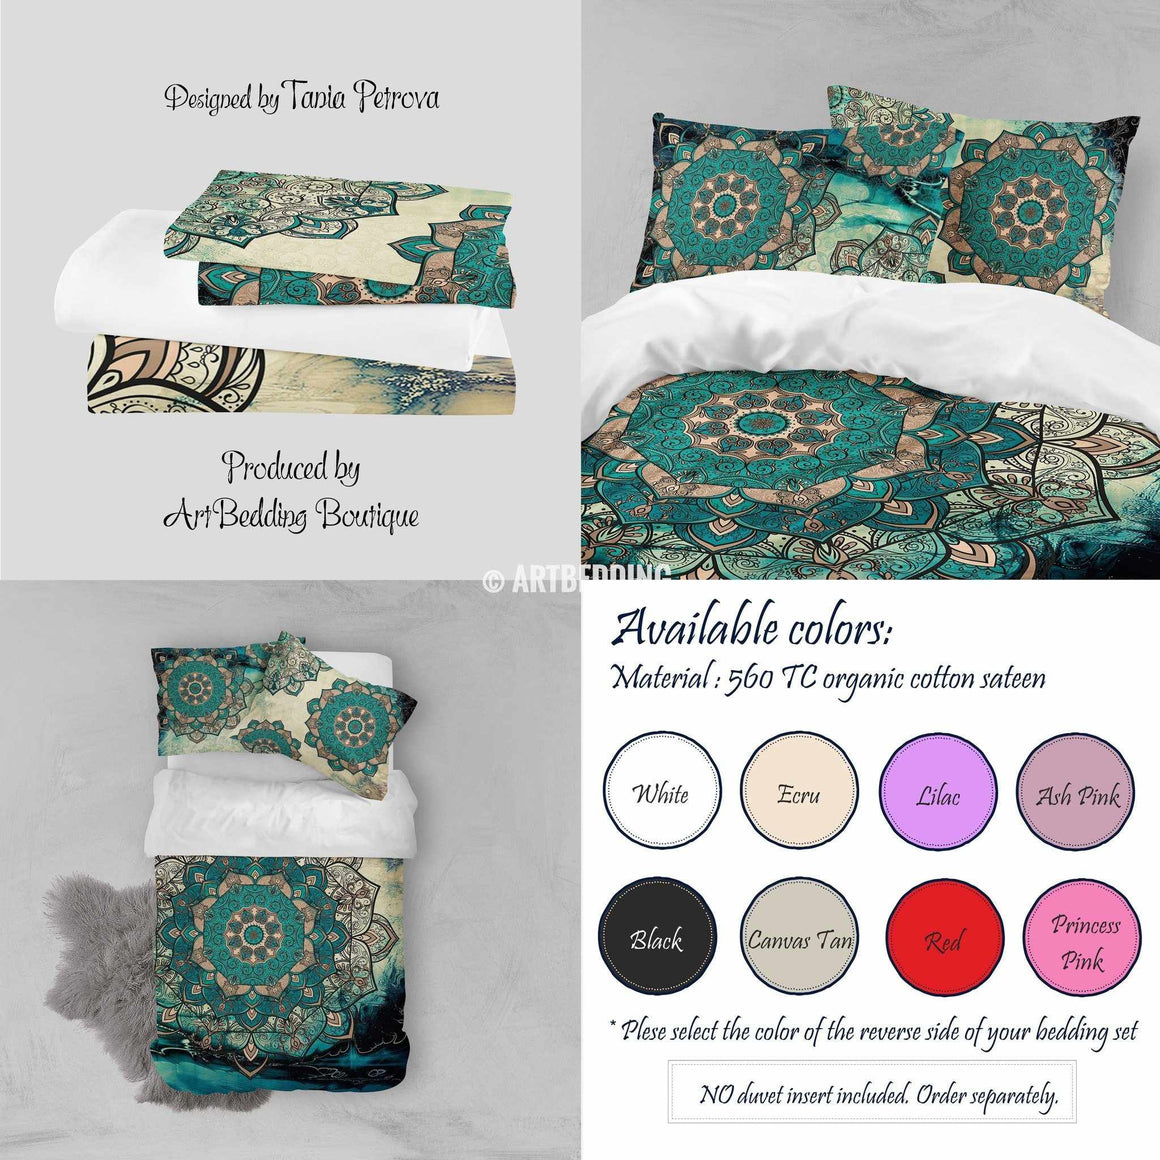 Bohemian bedding, Stunning Deco Mandala duvet bedding set, Vintage teal & gold boho duvet cover set, Teal mandala bedding, boho bedspread, artbedding art Bedding set